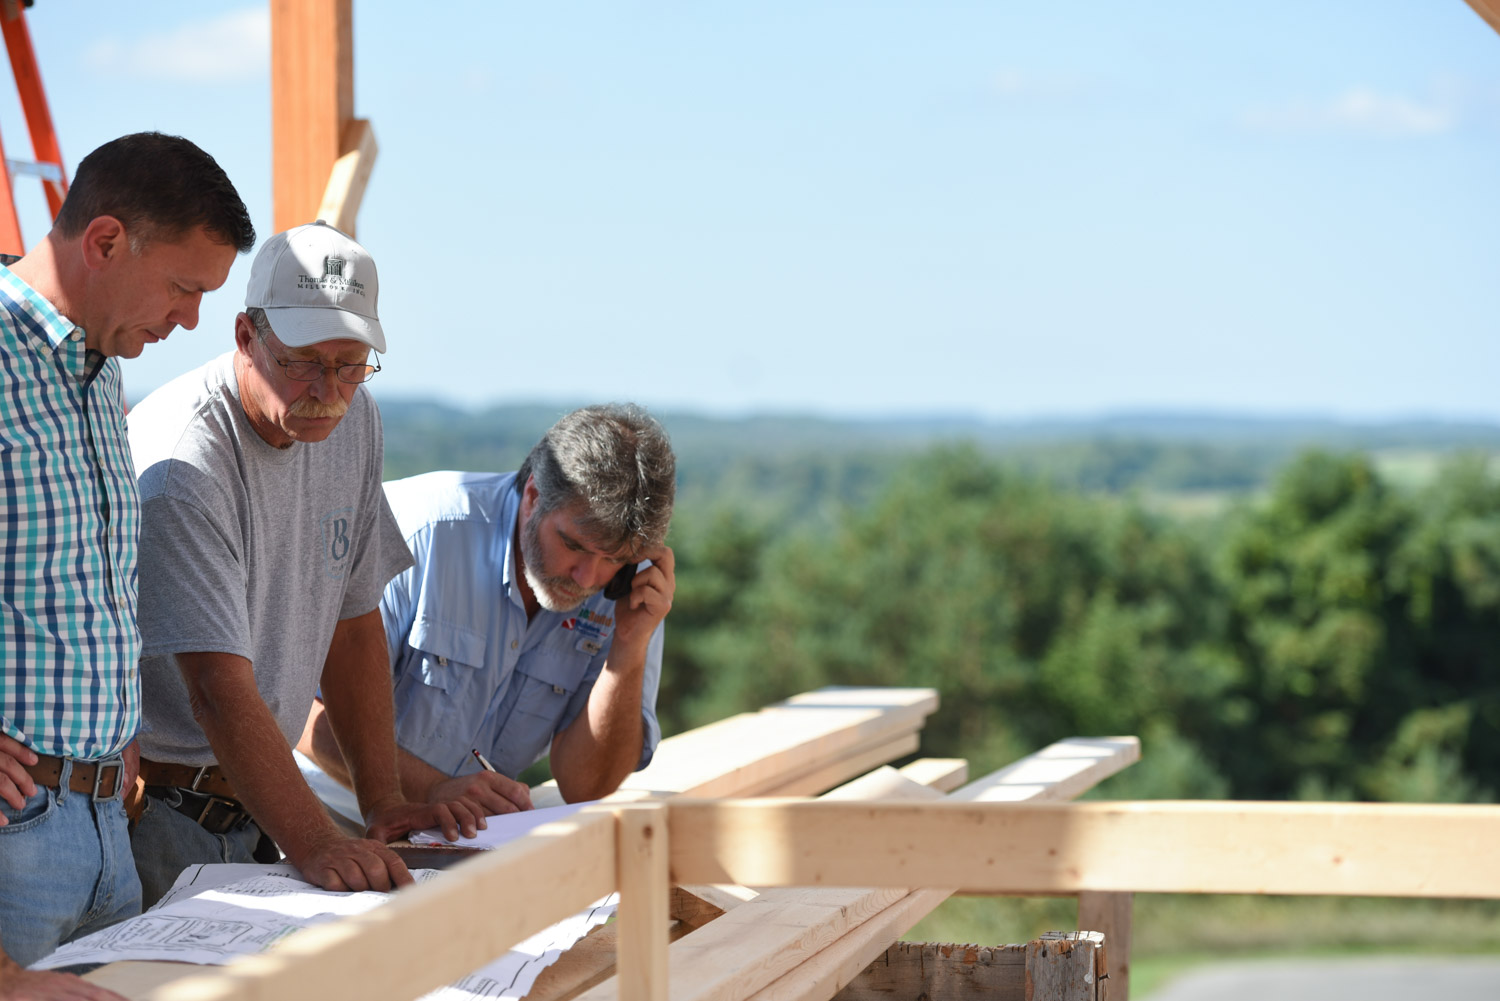 Apply to begin your residential construction, carpentry, or painting career at Birchwood Construction in Harbor Springs, MI.